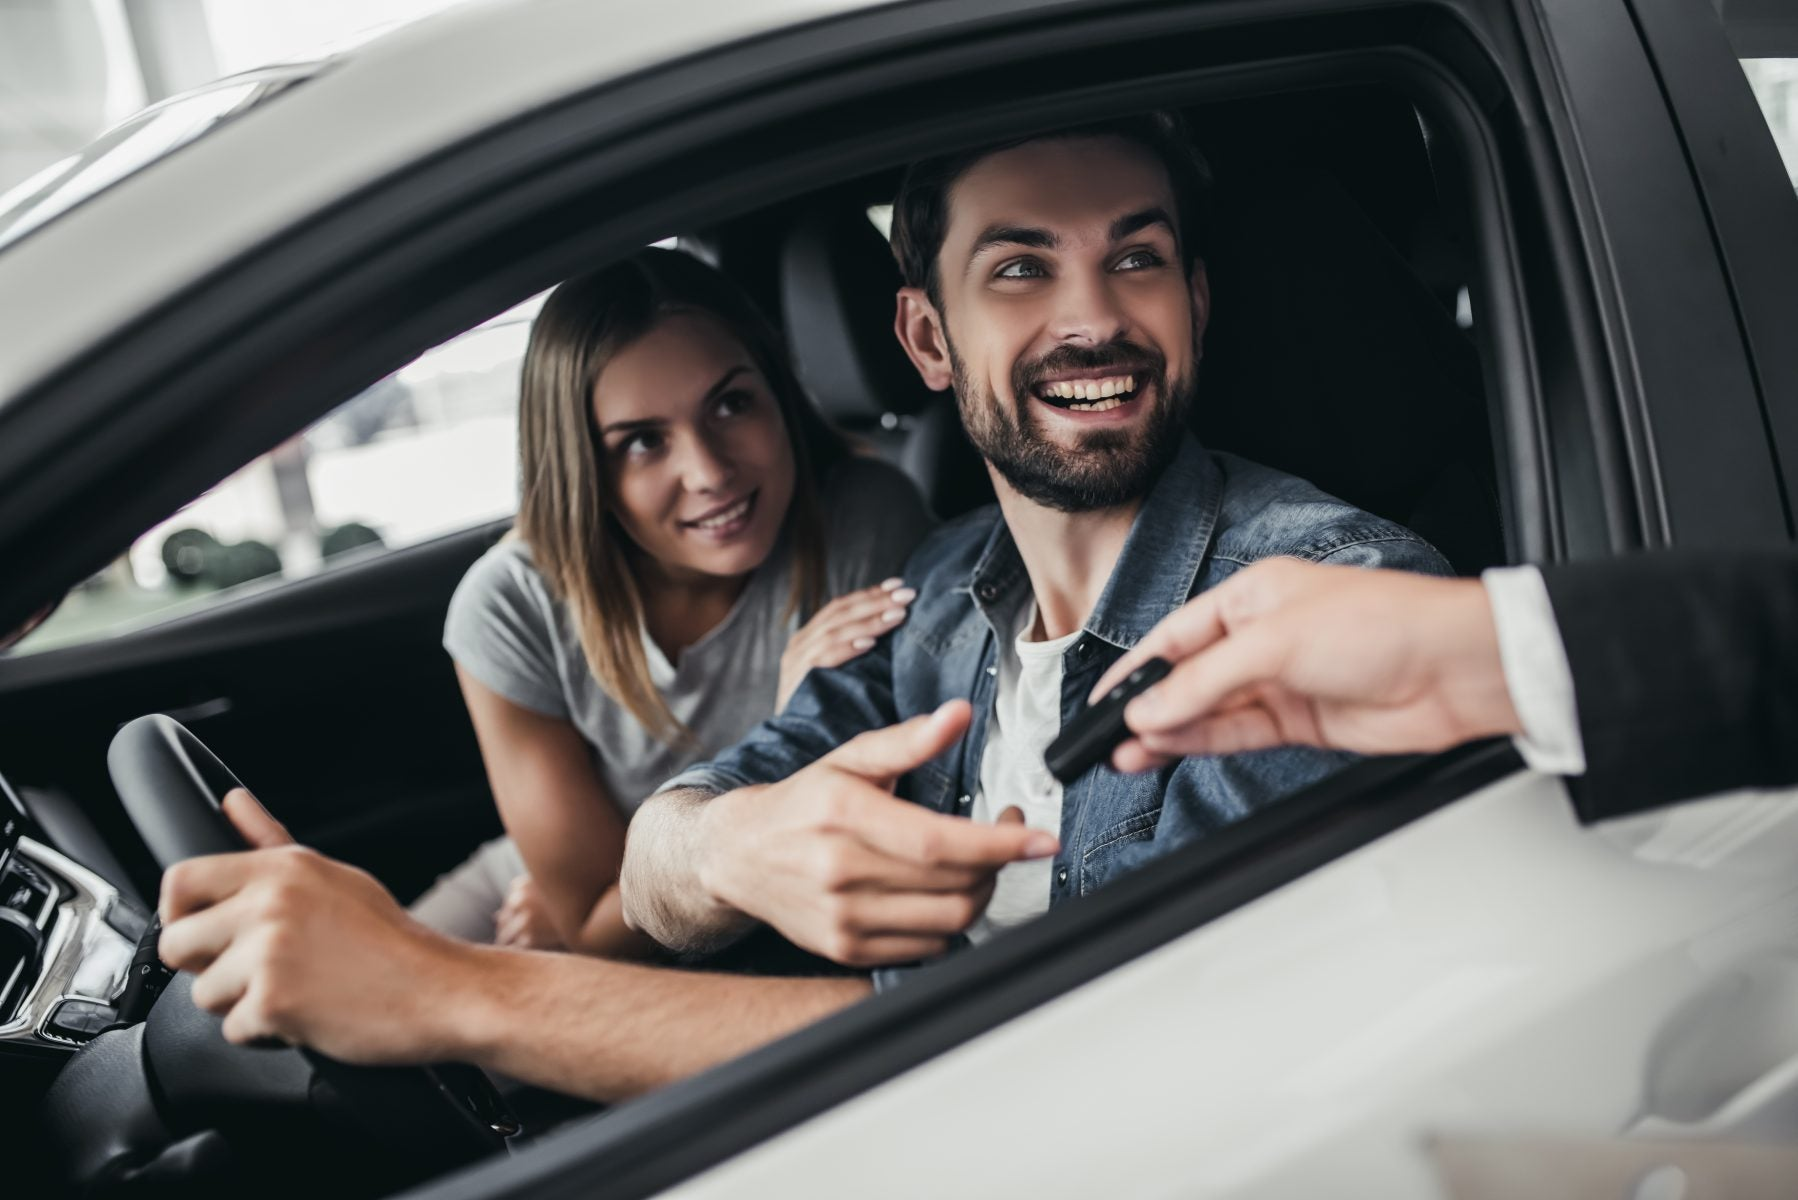 The Fastest Way to Earn a Free Car Rental On Your Next Trip